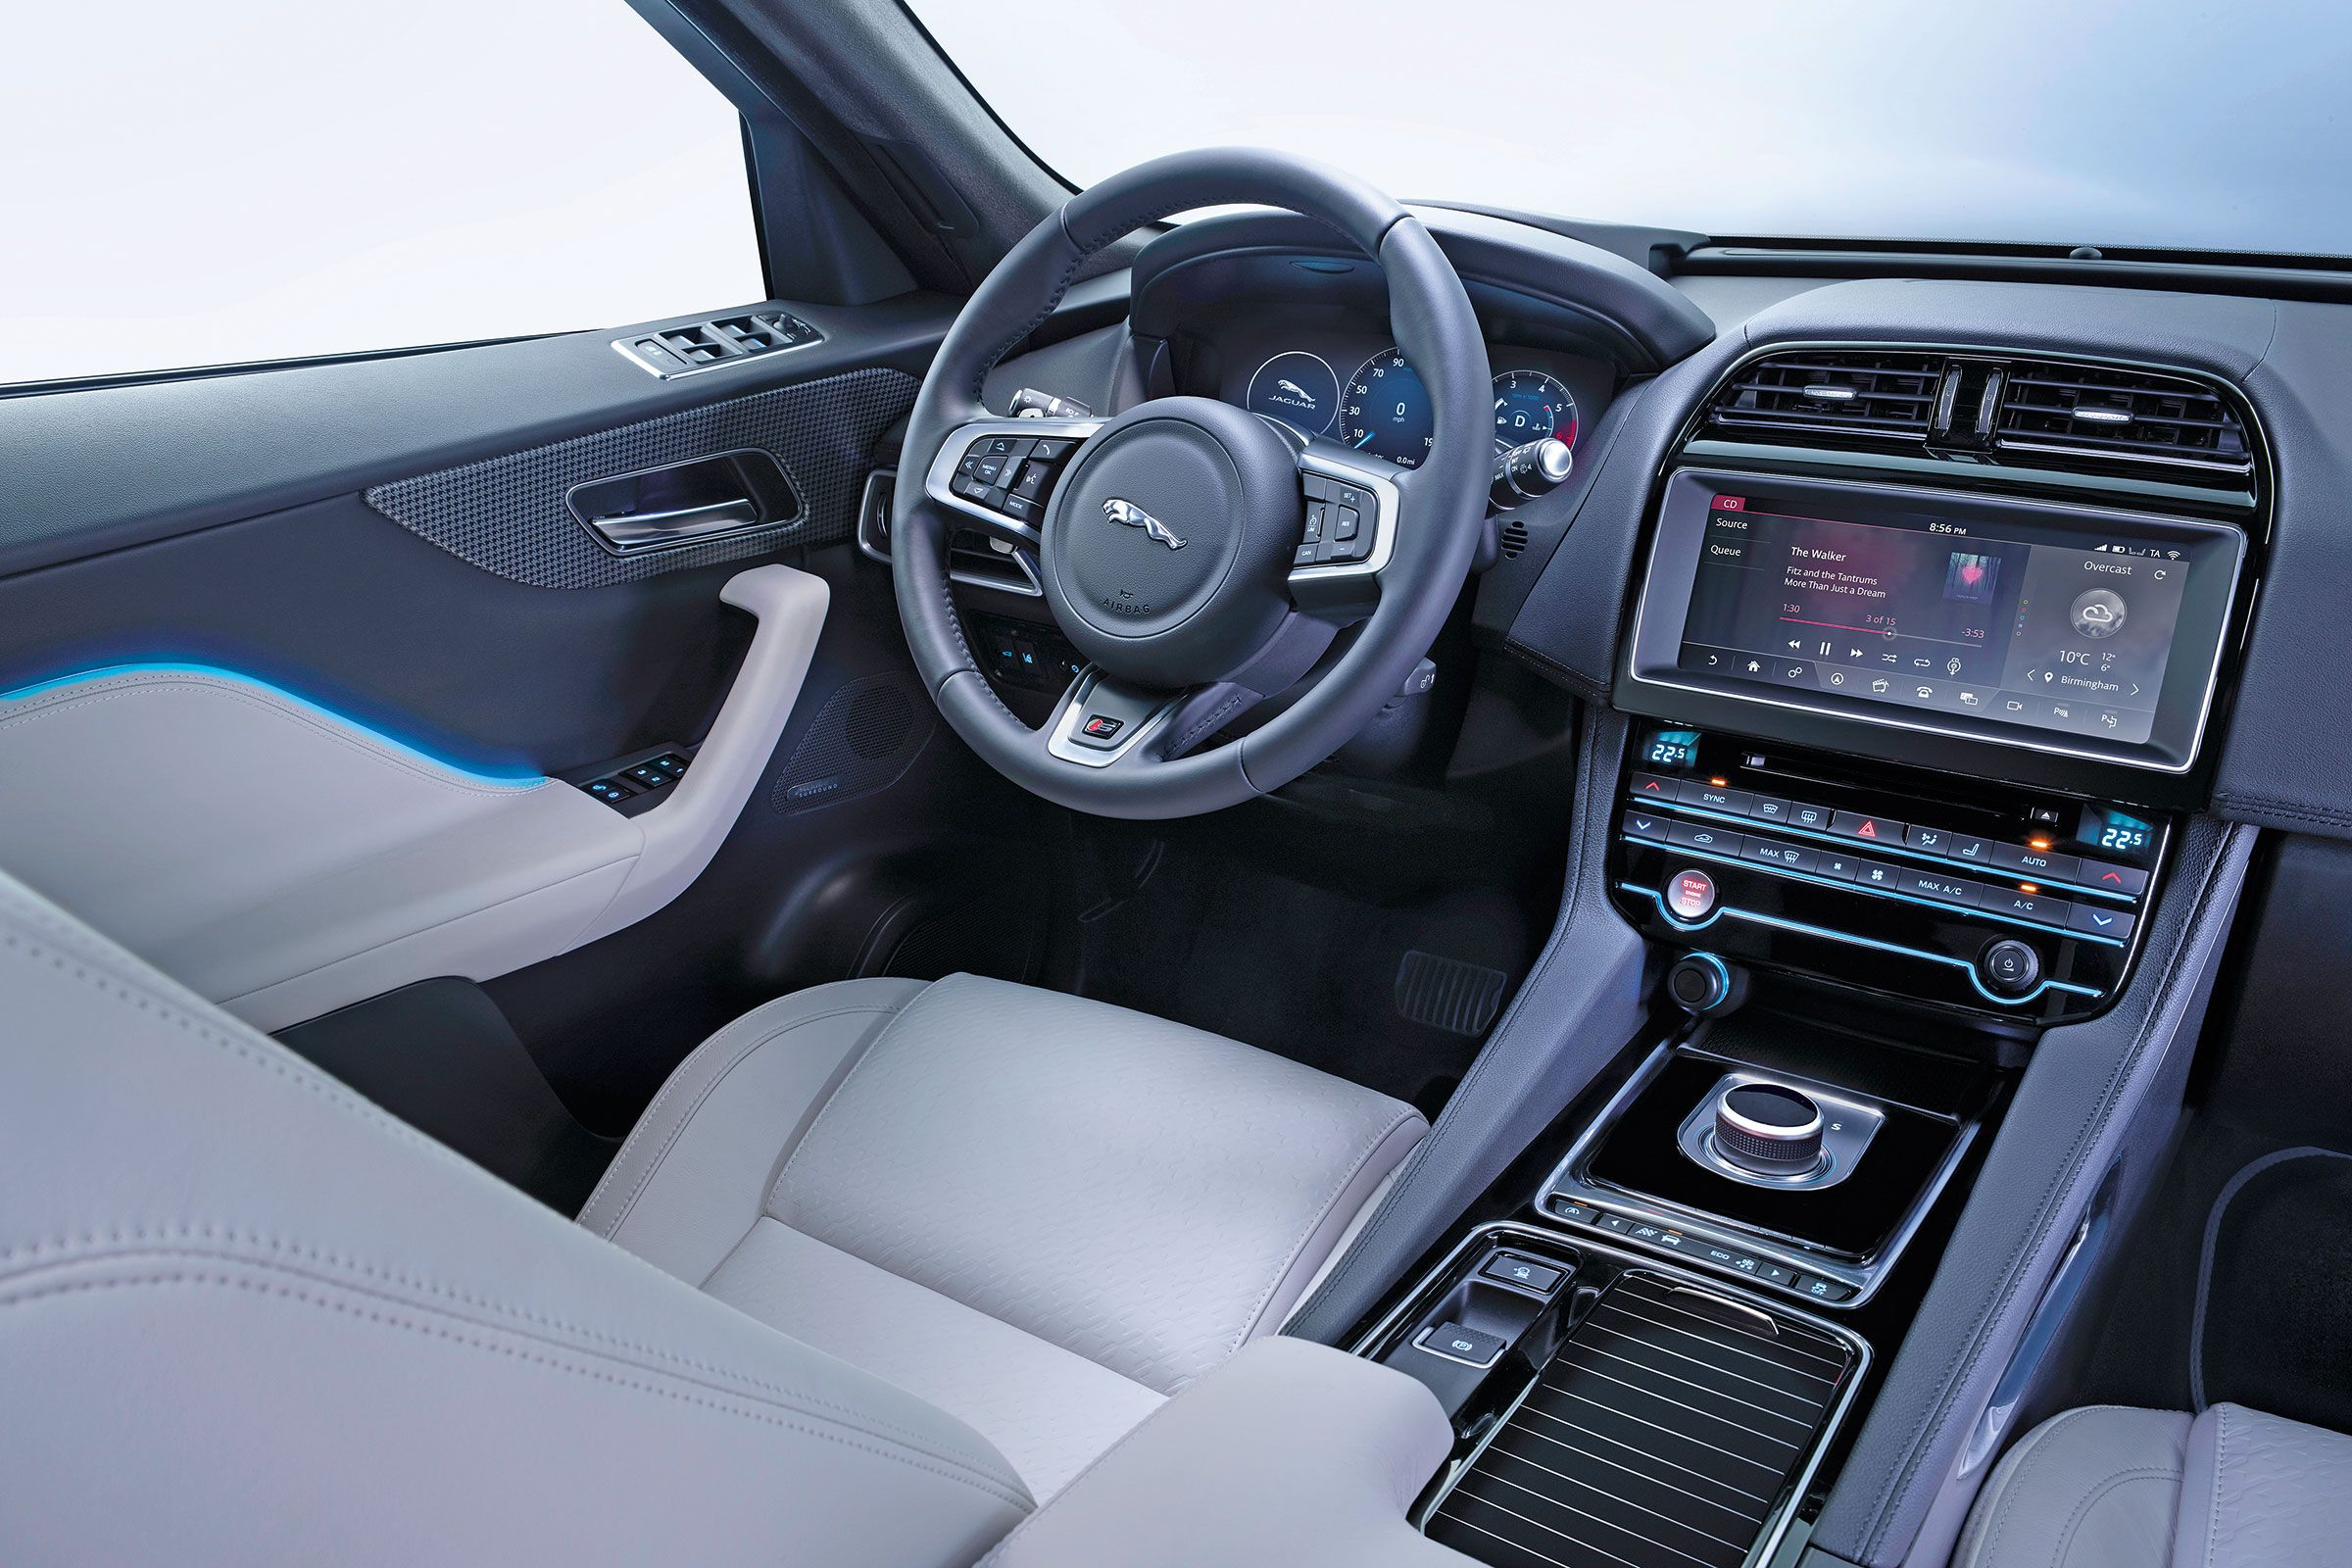 Interieur E Pace Jaguar New Jaguar F Pace Revealed Pictures Jaguar F Pace Interior